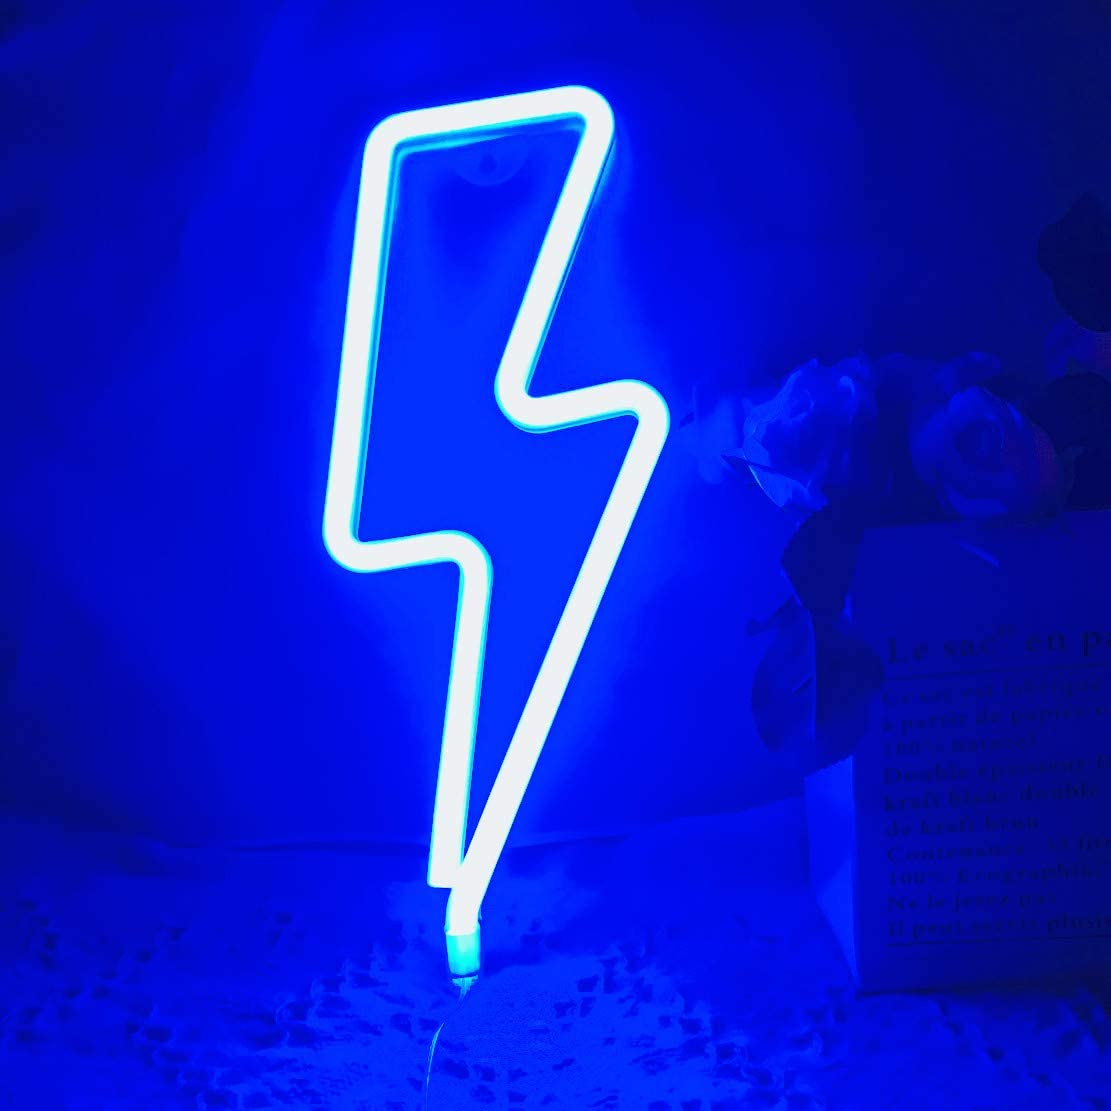 Blue Lightning Neon Light,LED Lightning Sign Shaped Decor Light,Wall Decor for Christmas,Birthday Party,Kids Room, Living Room, Wedding Party Decor